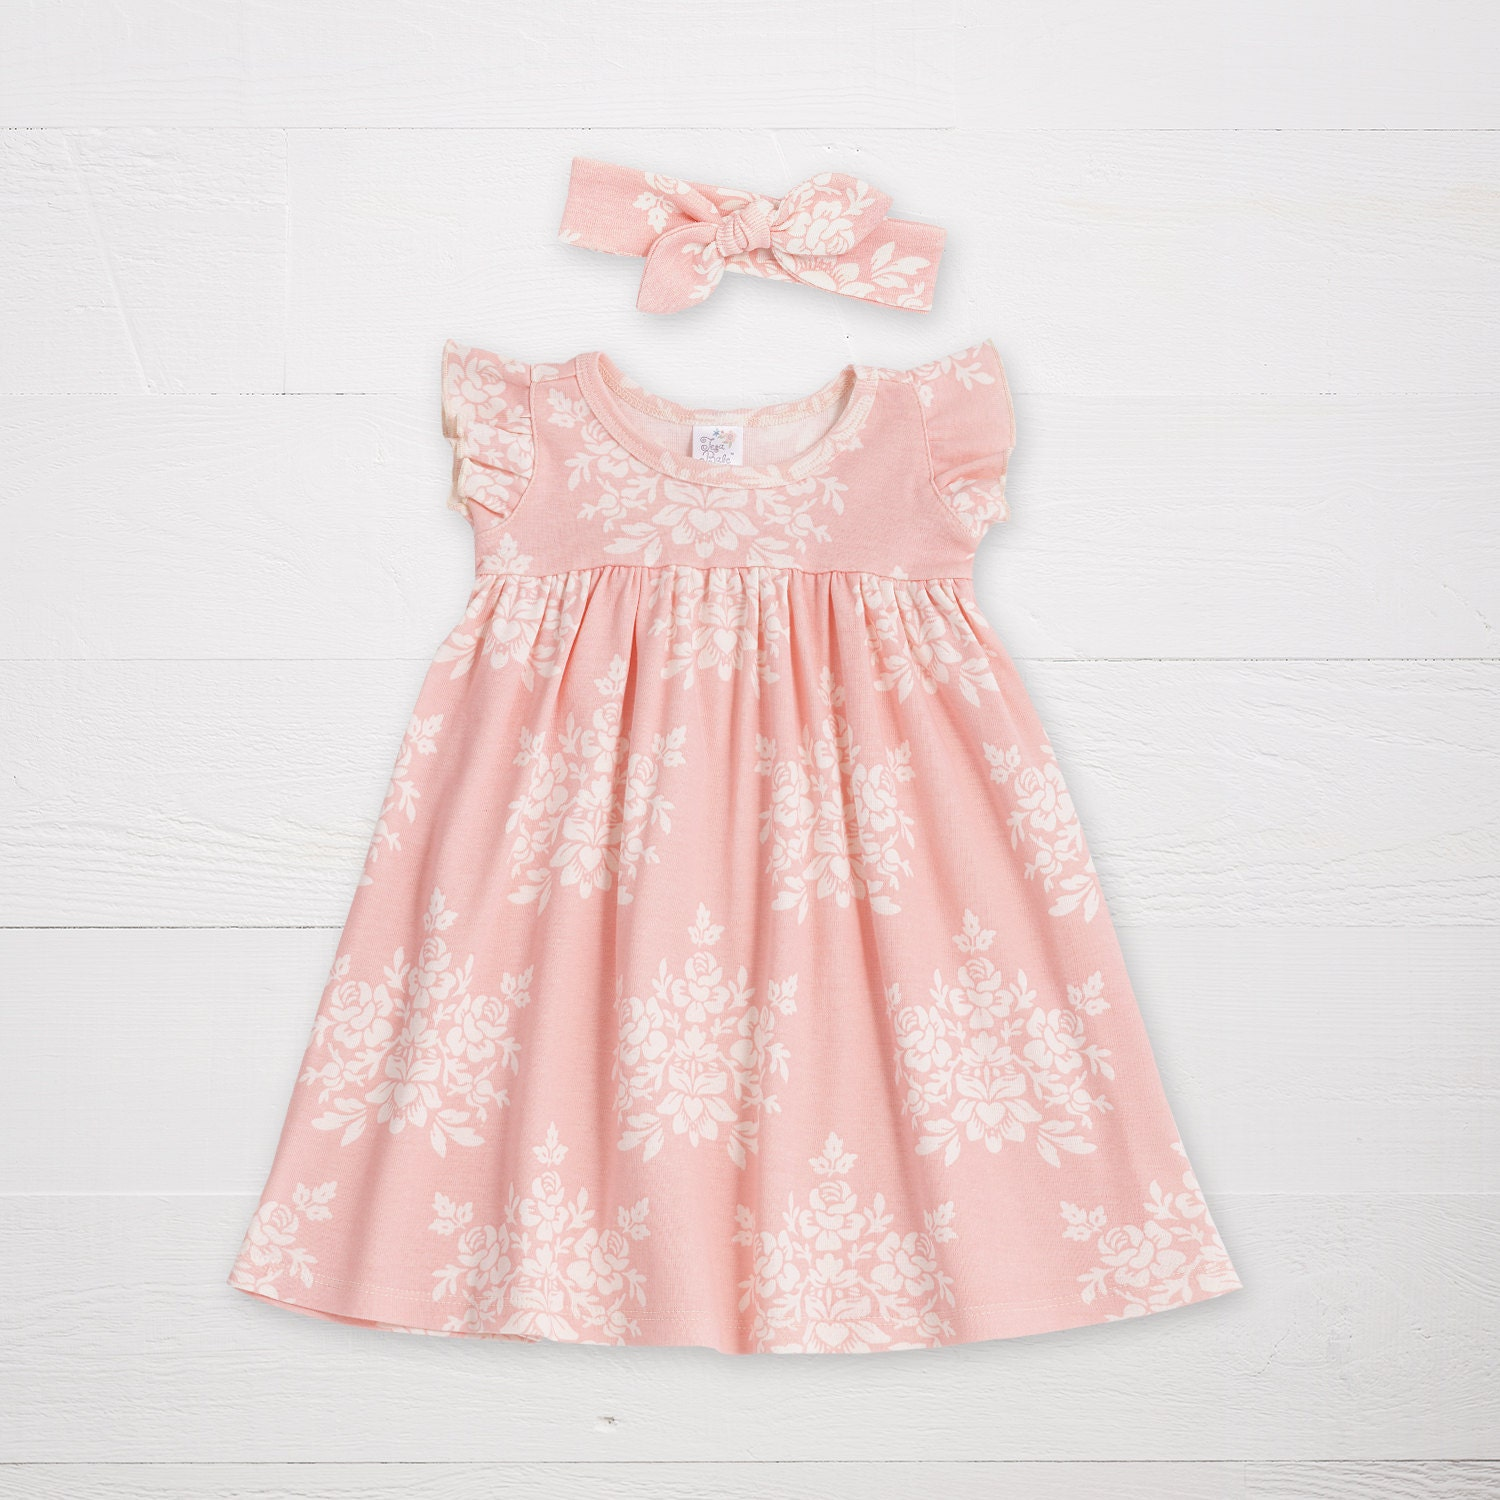 Baby Girl ( Months) Kids' Clothing Sales at Macy's are a great opportunity to save. Shop the Baby Girl ( Months) Kids' Clothing Sale at Macy's and find the latest styles for your little one today. Free Shipping Available.